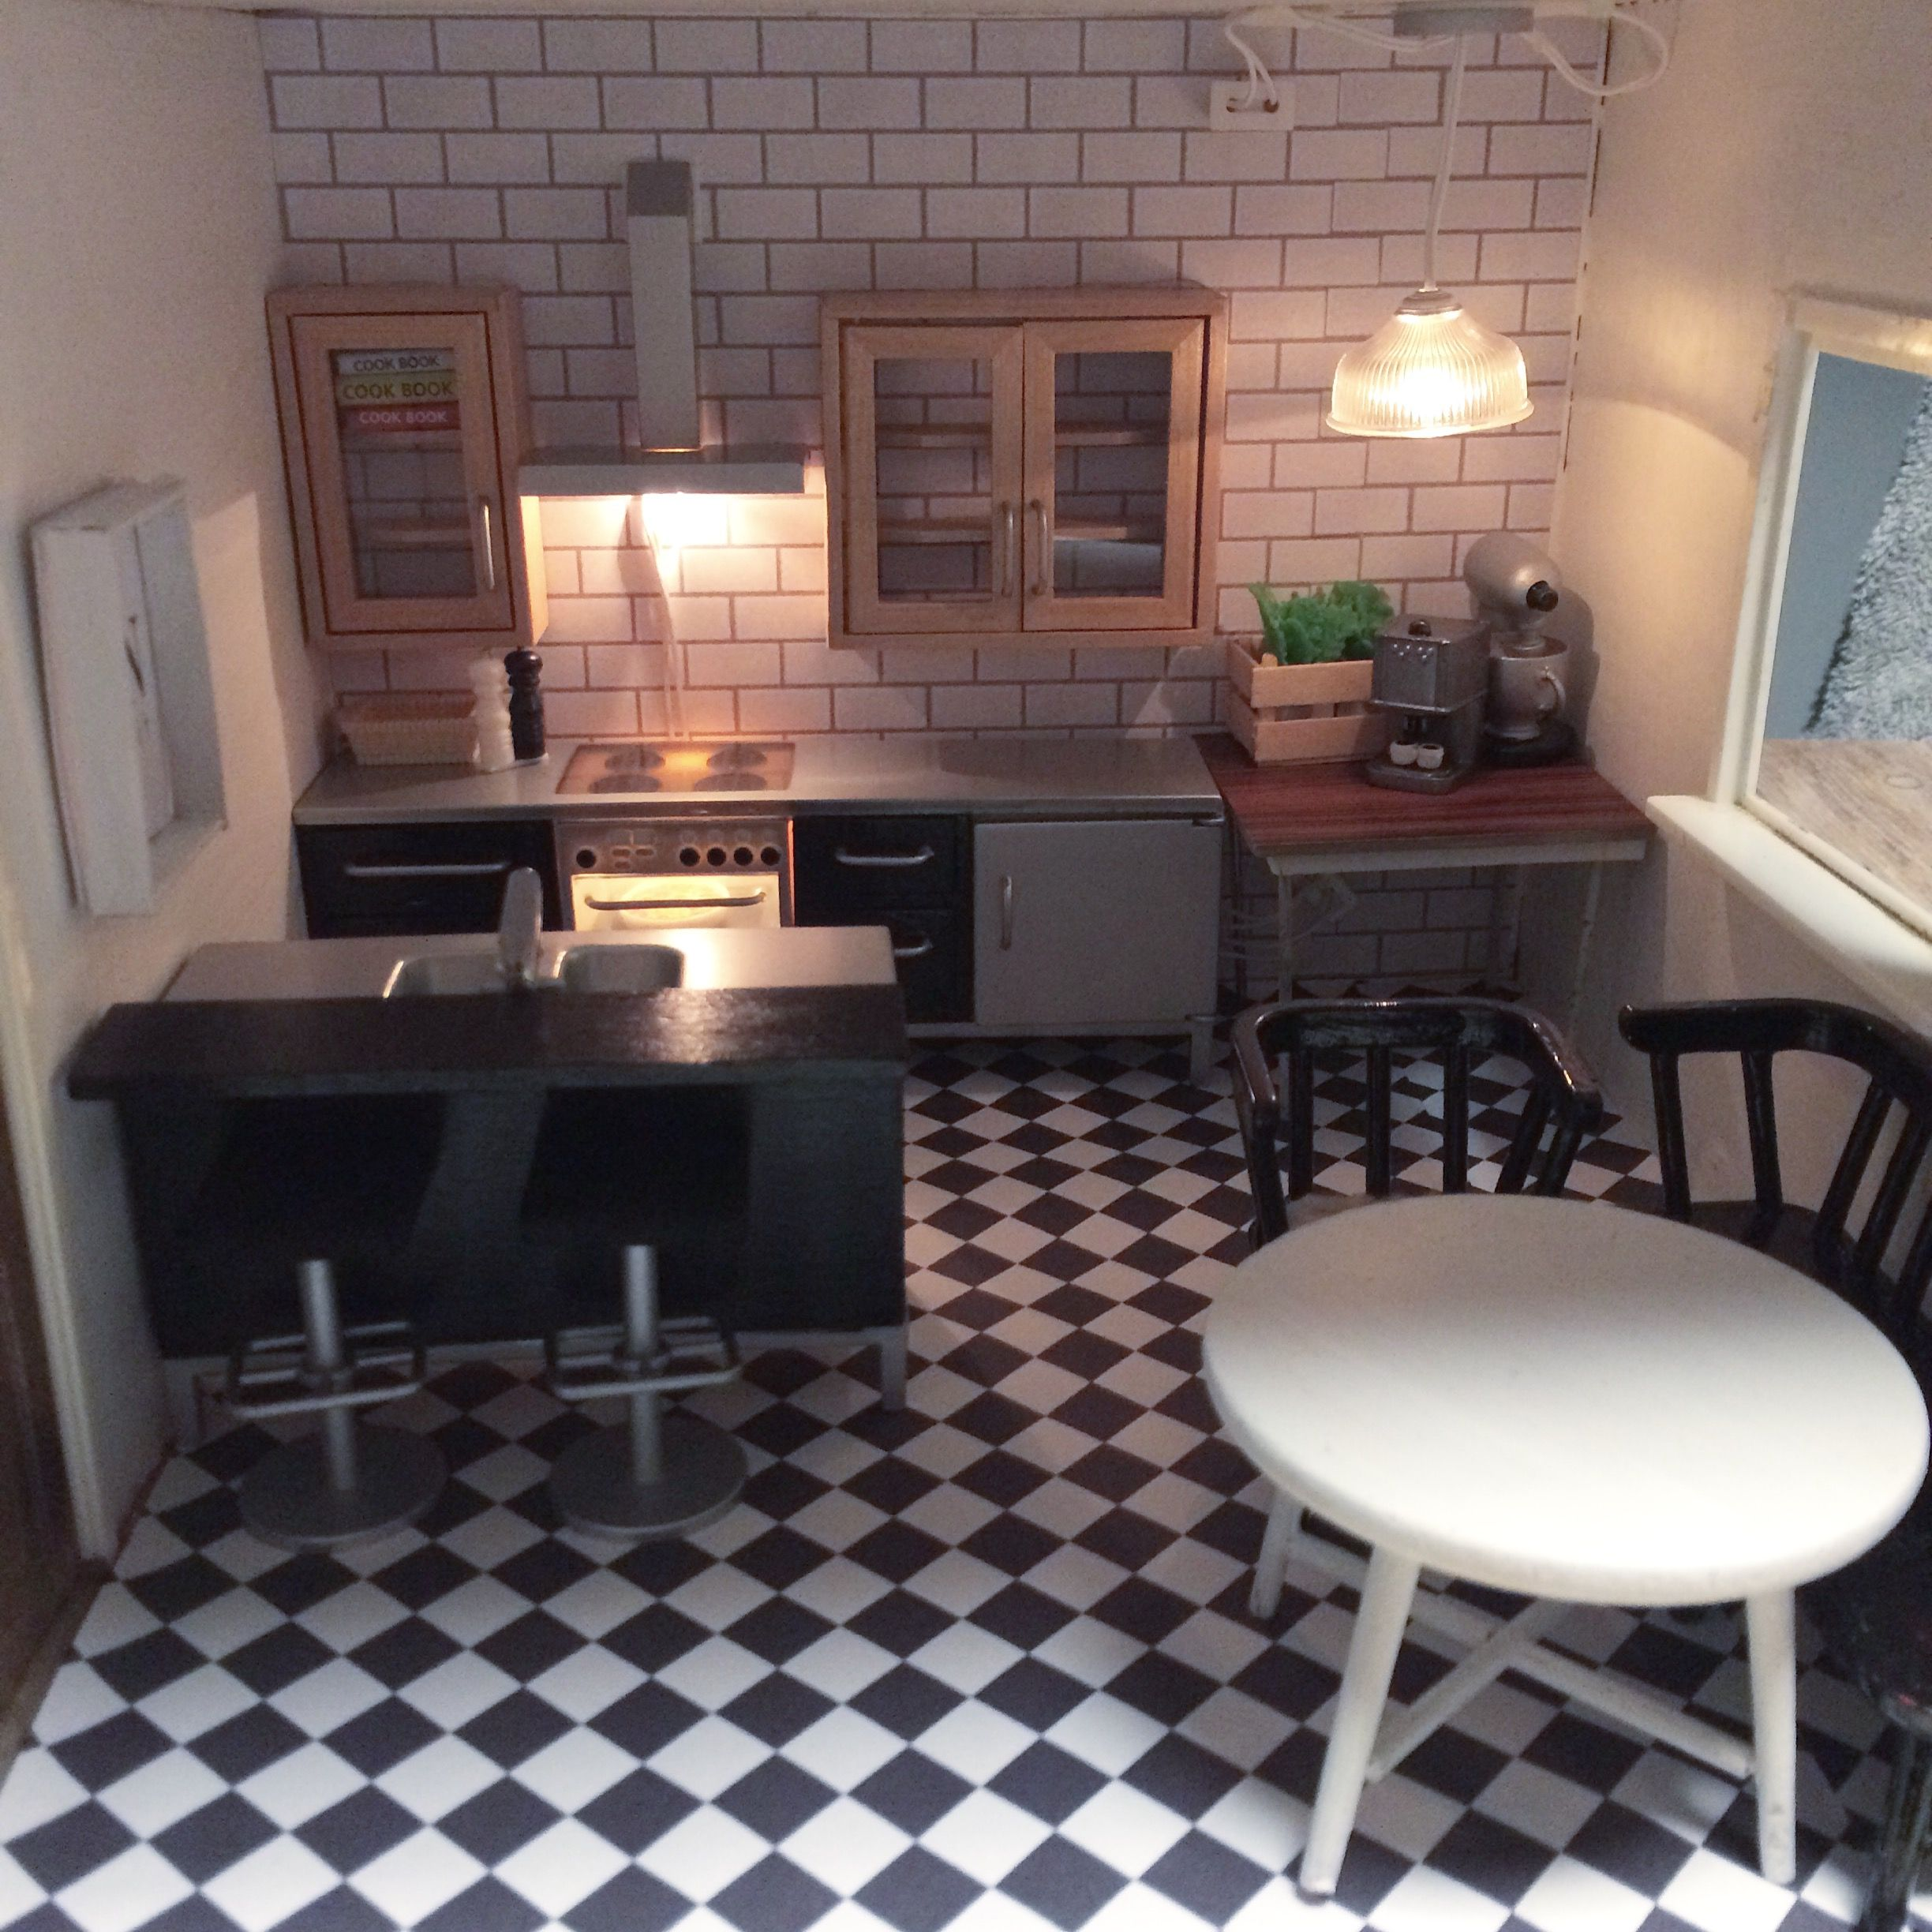 The kitchen in the Lundby Dallas house